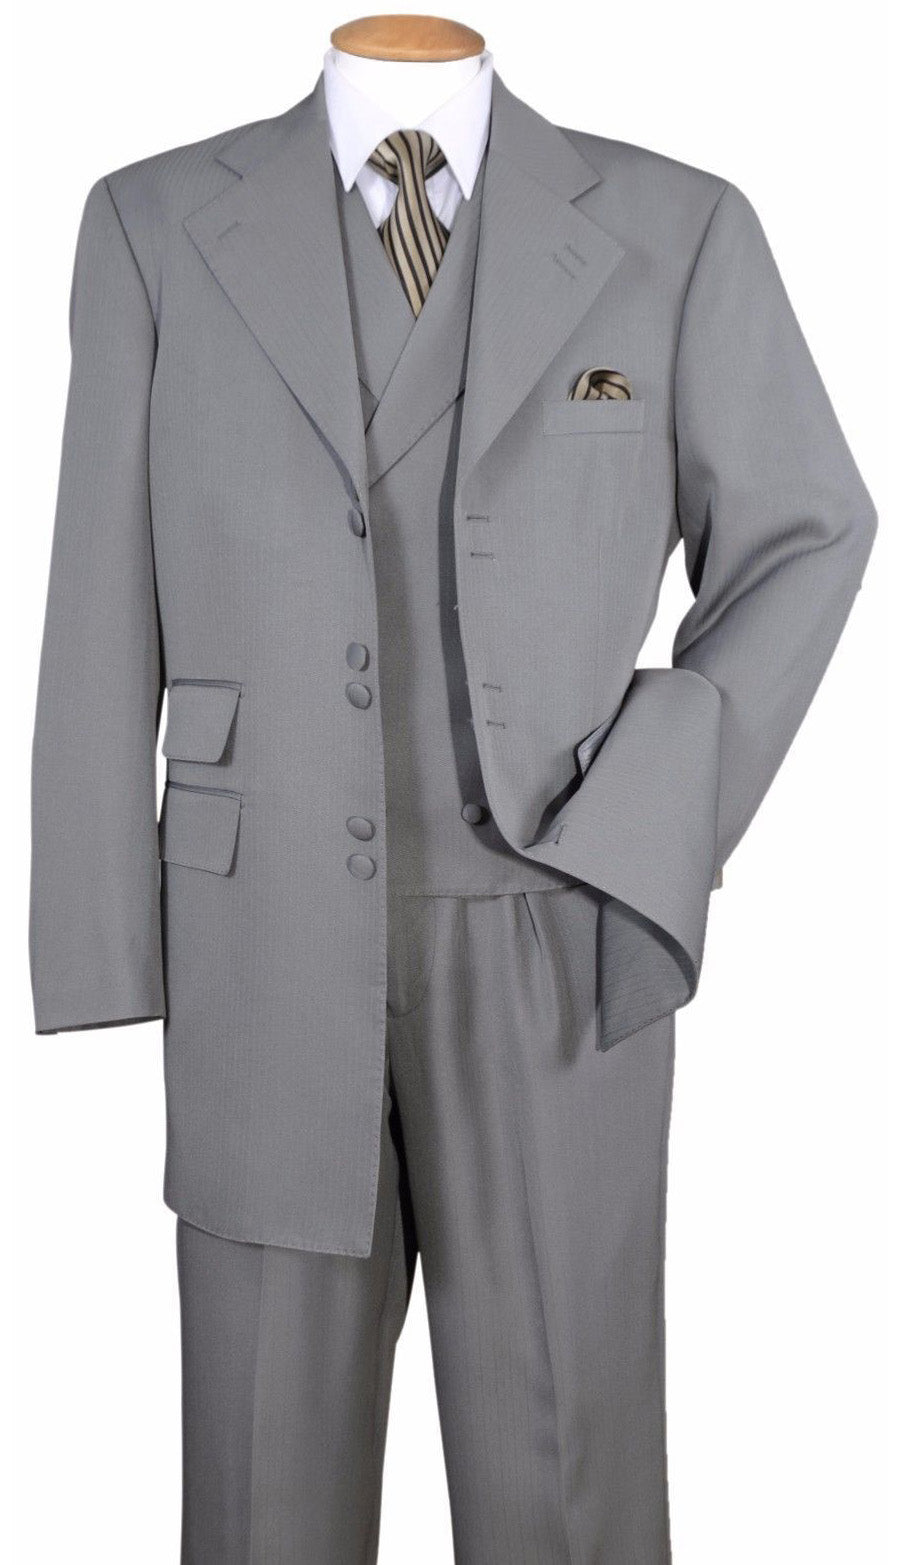 Milano Moda Suit 2917V-Grey - Church Suits For Less